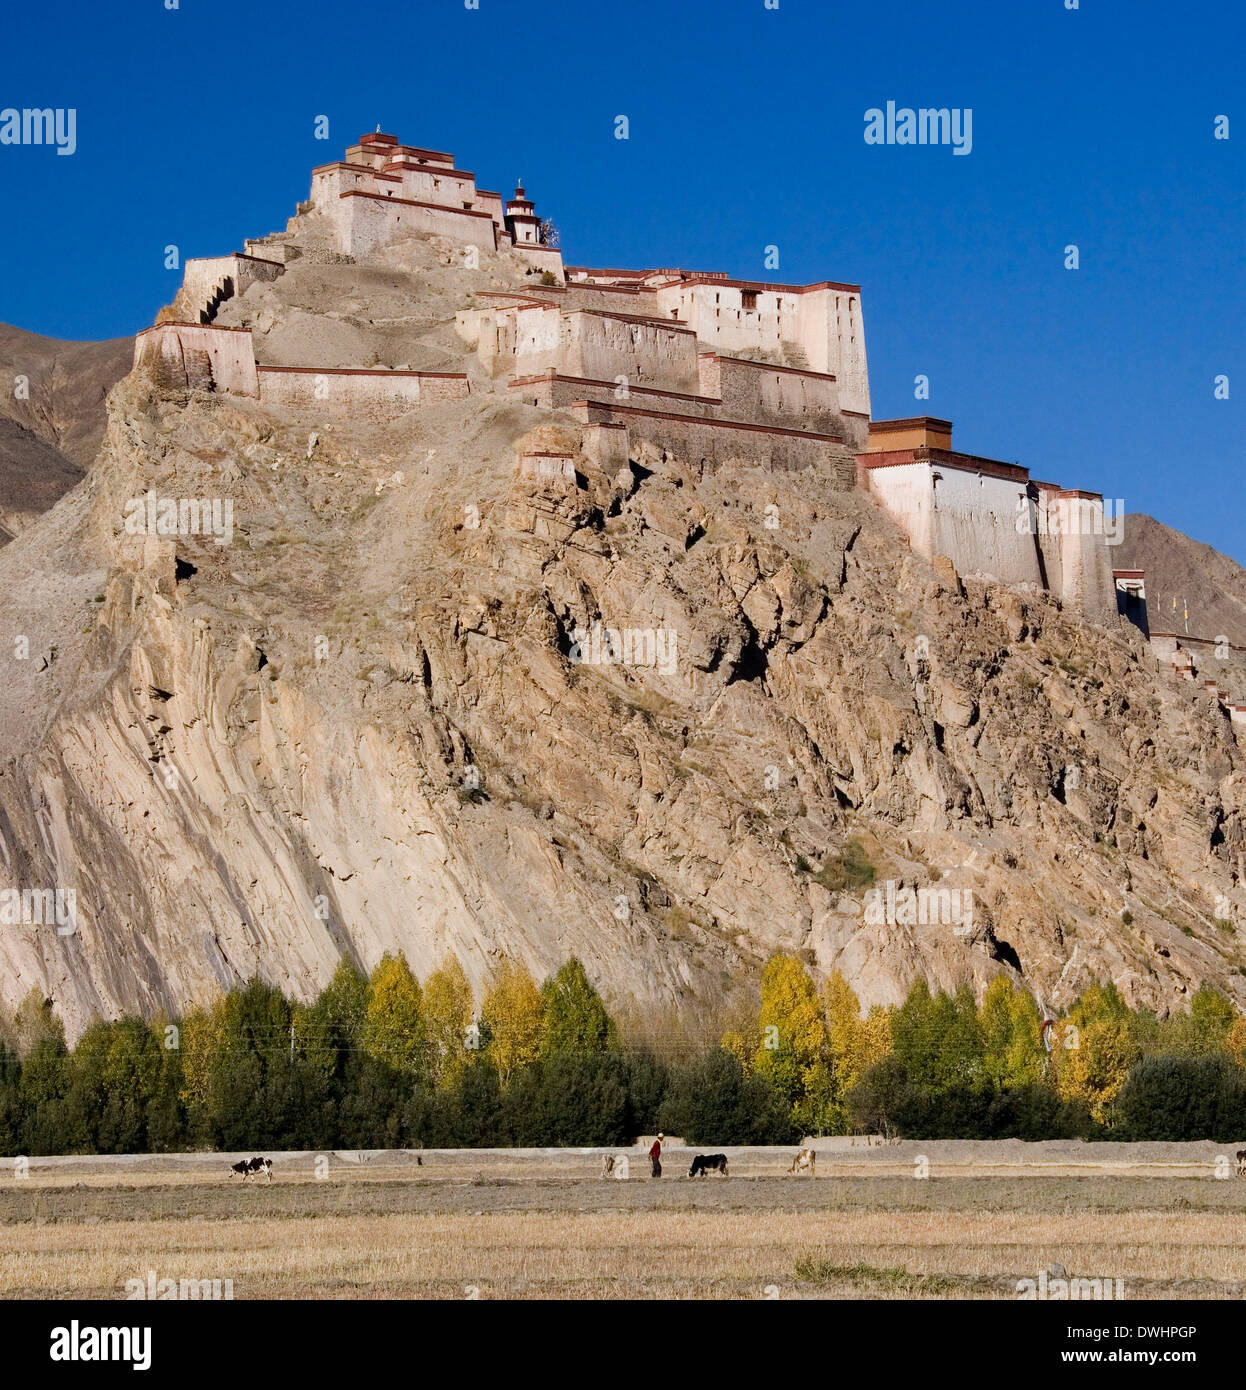 Gyantse Fortress near the town of Gyantse in the Tibet Autonomous Region of China. - Stock Image